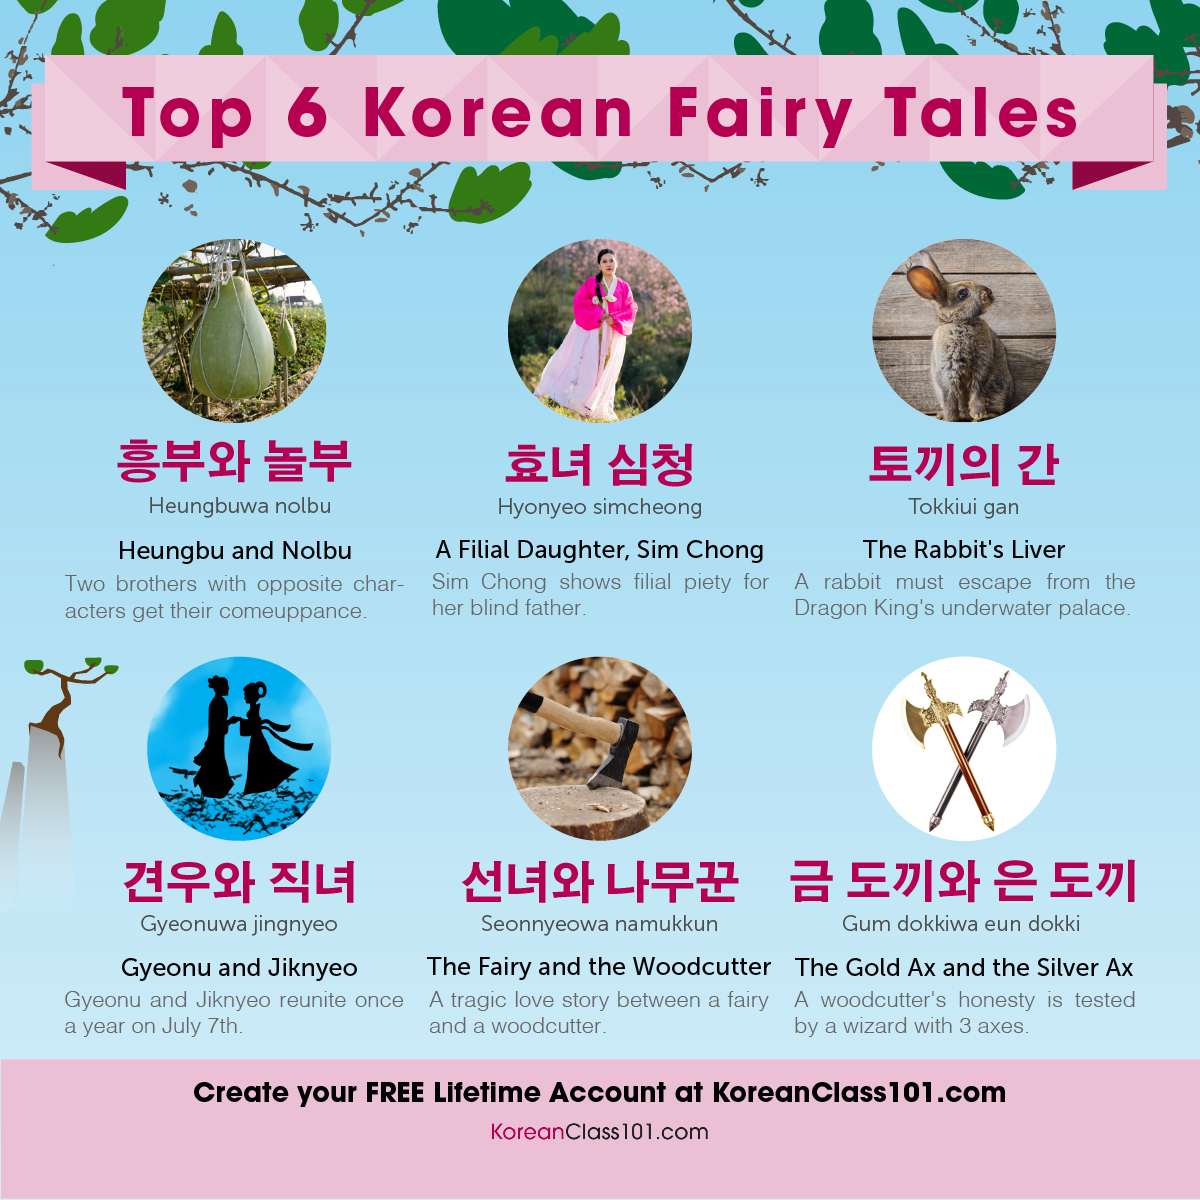 Top 6 Korean Fairy Tales